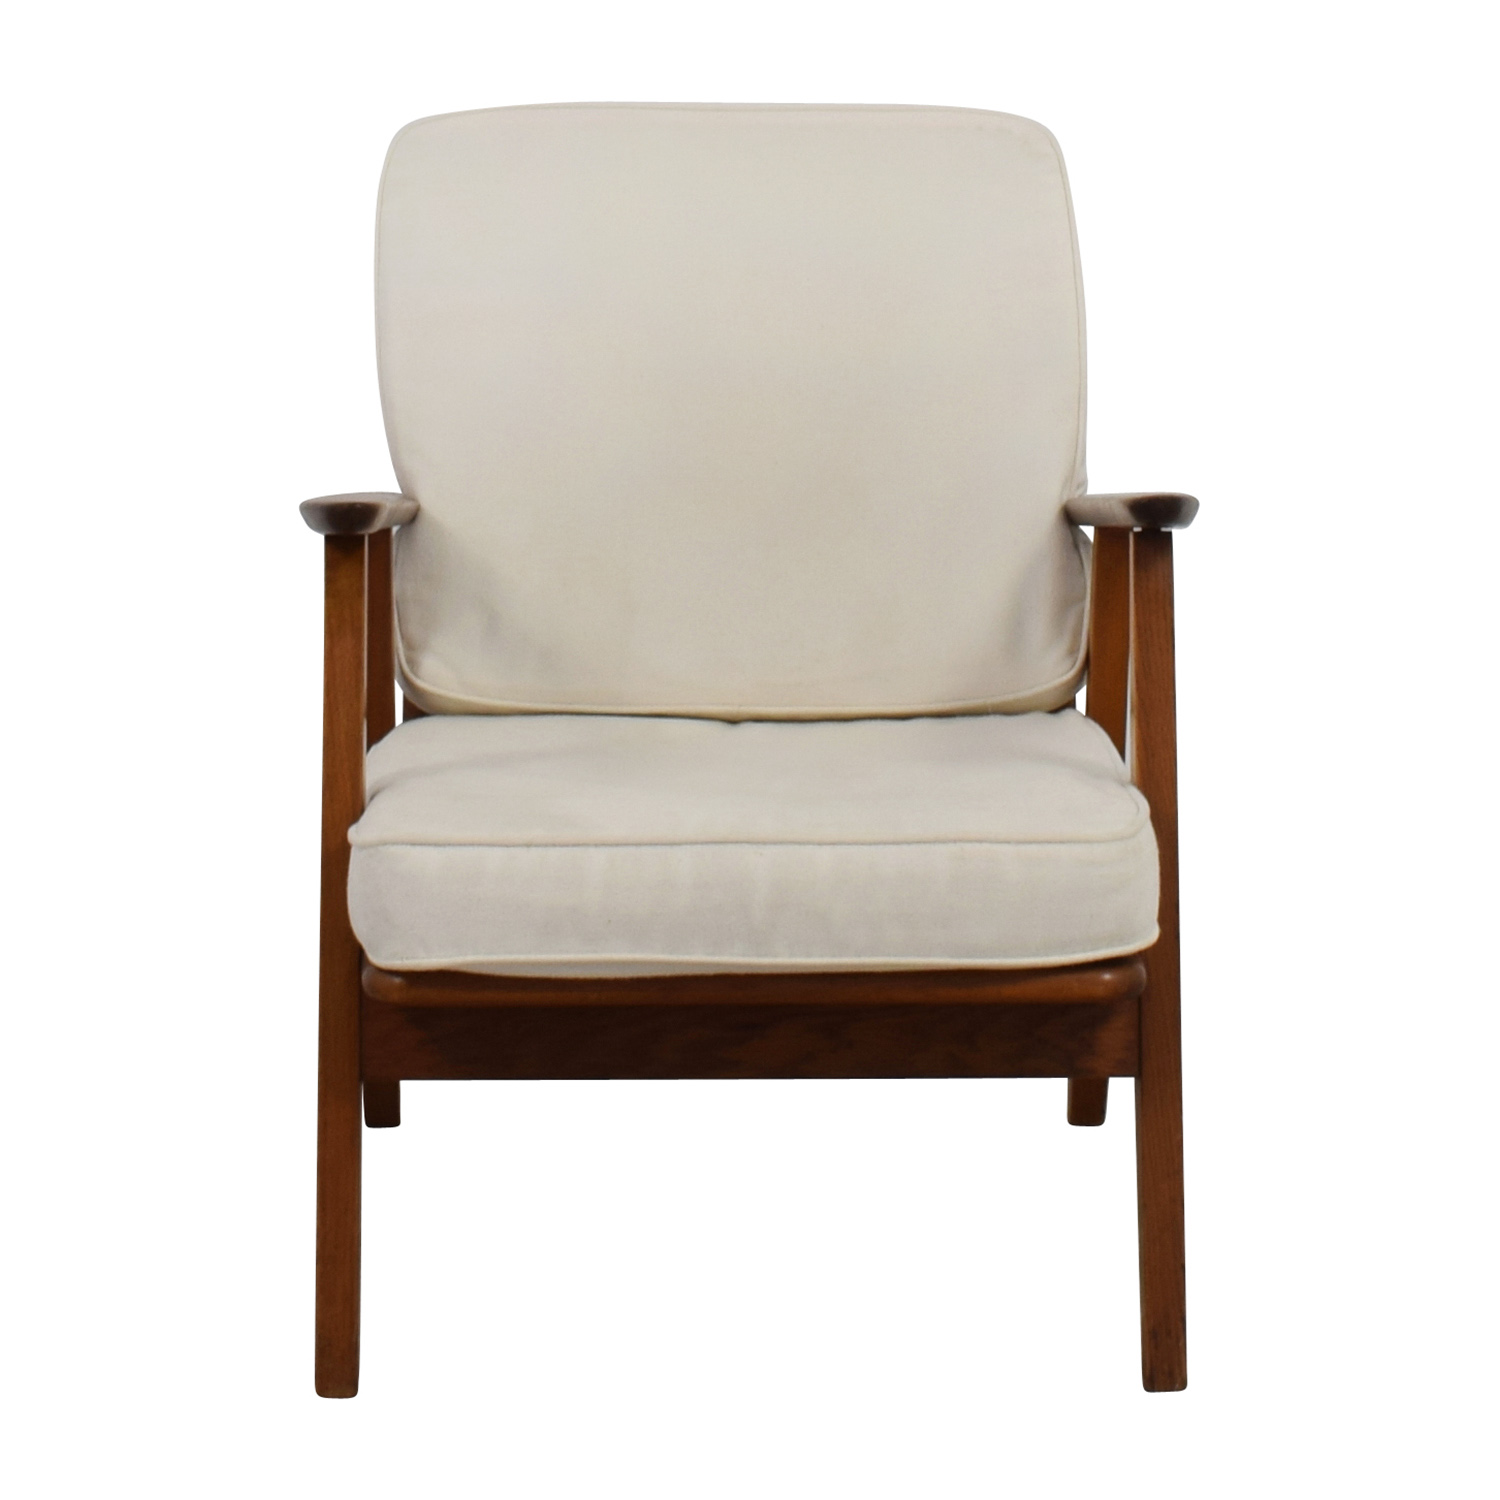 Danish Mid-Century Arm Chair / Chairs